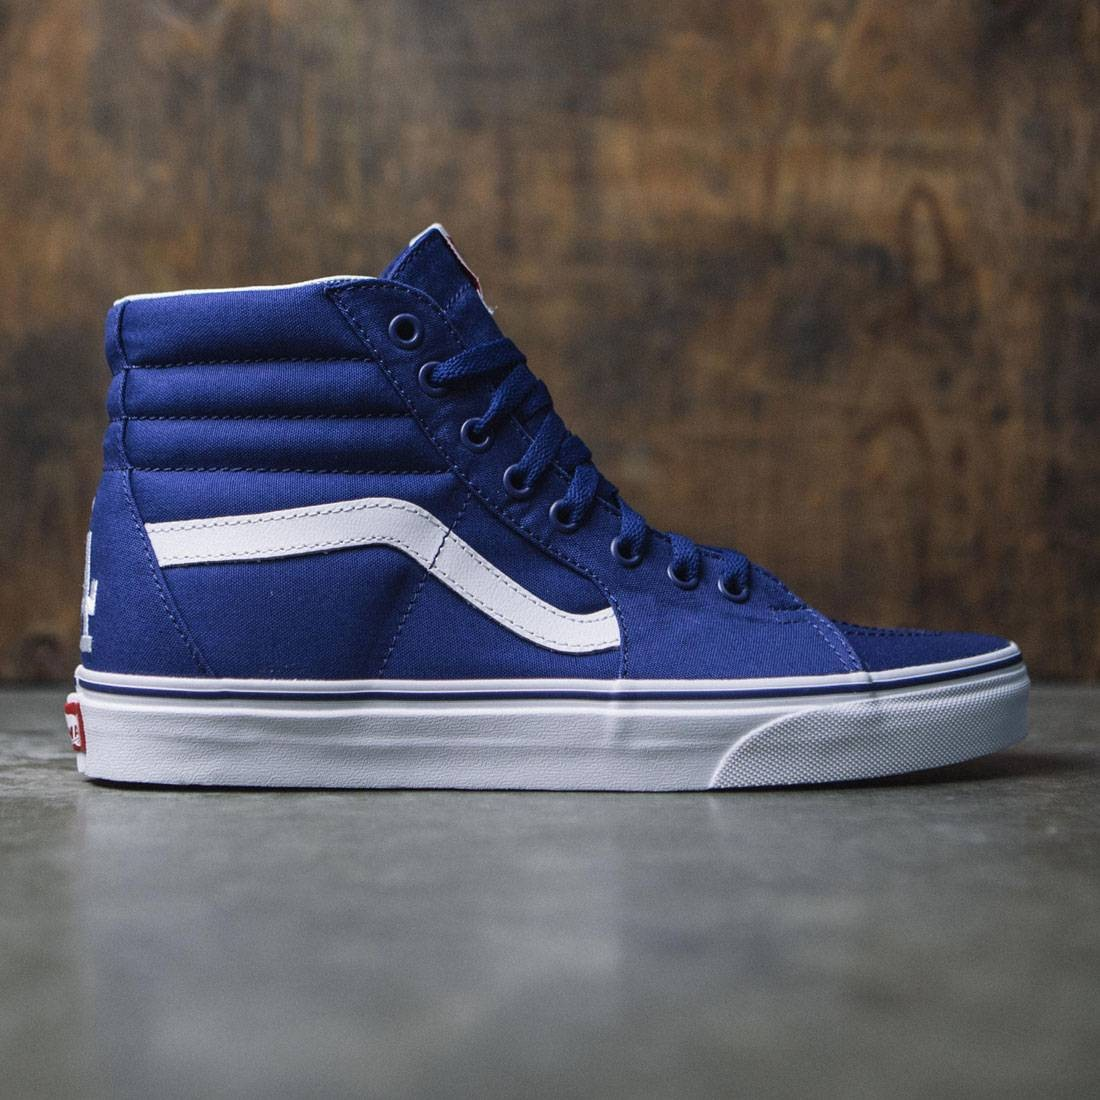 16058c4bd9b Vans x MLB Los Angeles Dodgers Men Sk8-Hi - Dodgers white blue